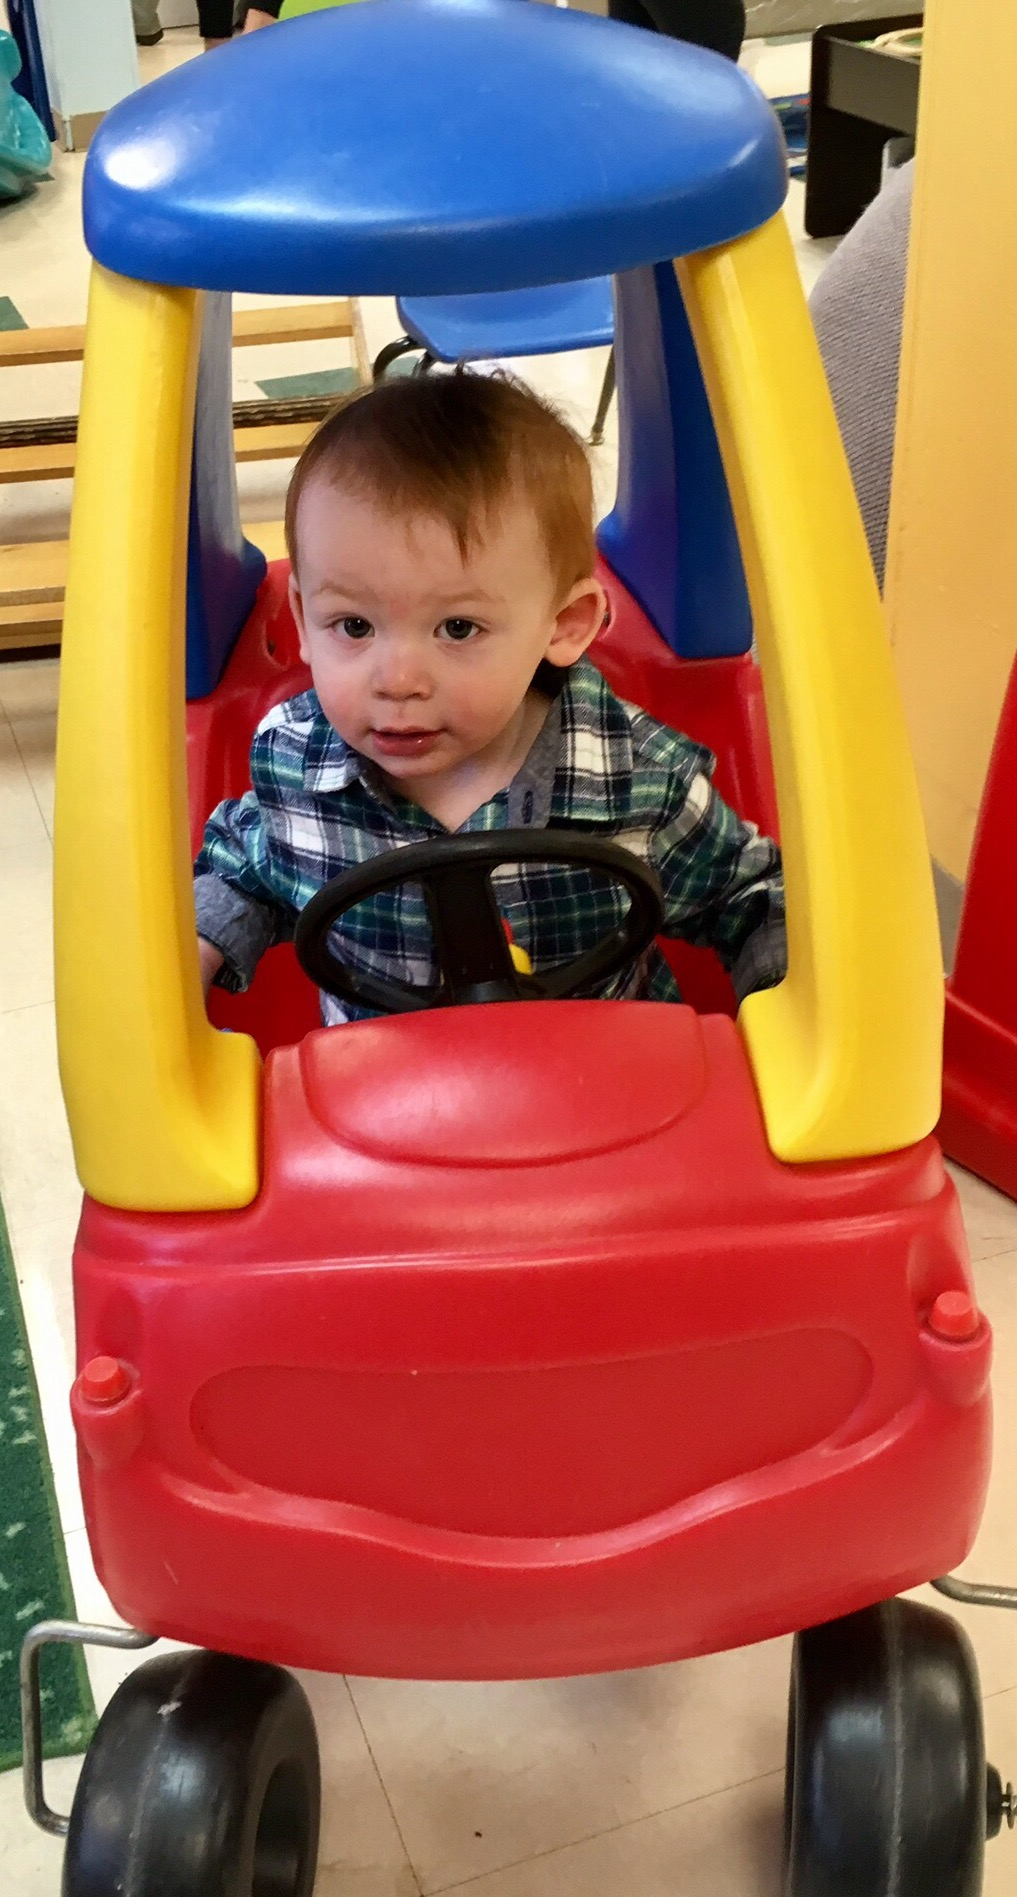 Joshua learning to drive at the Seesaw Center.